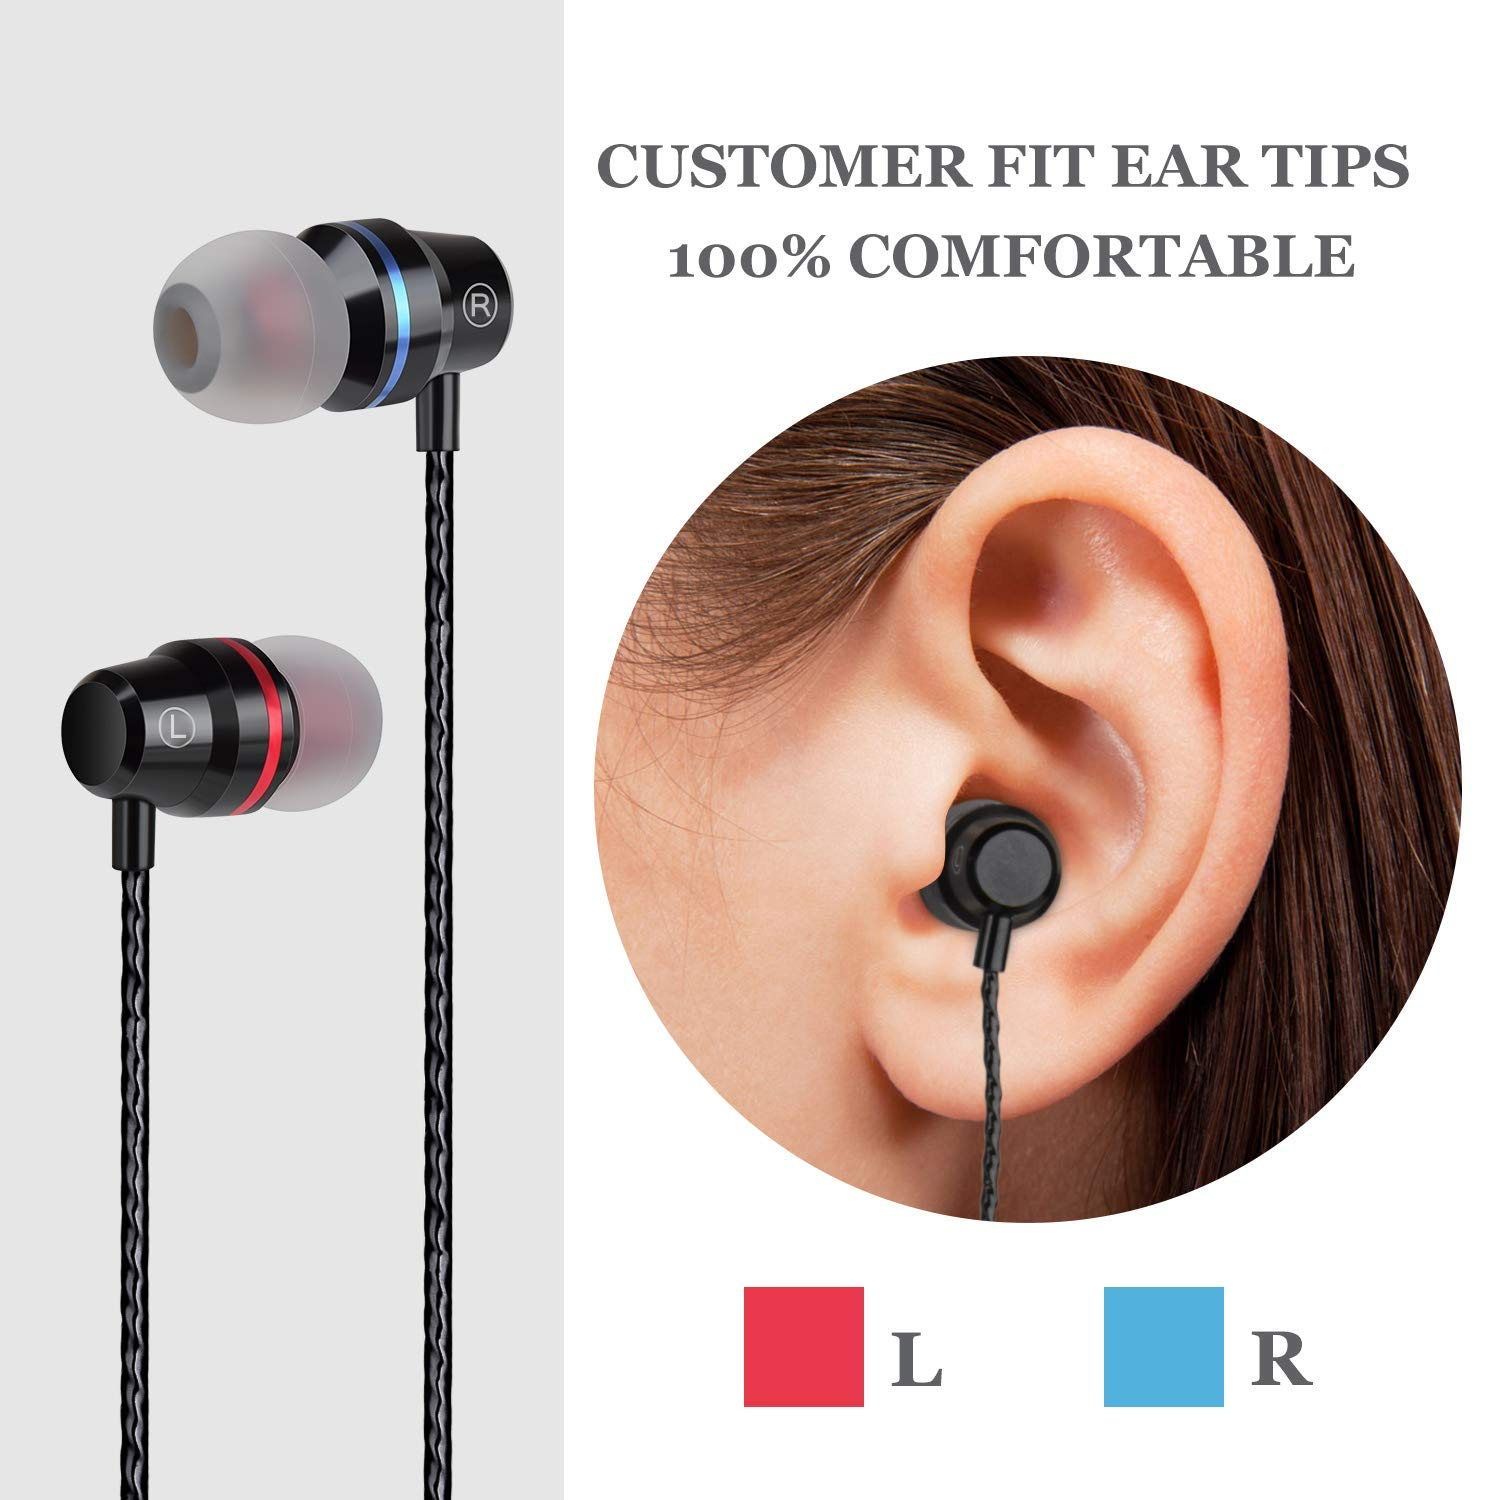 BDKING Bluetooth Headphones, Wireless Earbuds Stereo in-Ear Earphones with 2 Wireless Built-in Mic Headphone and Charging Case